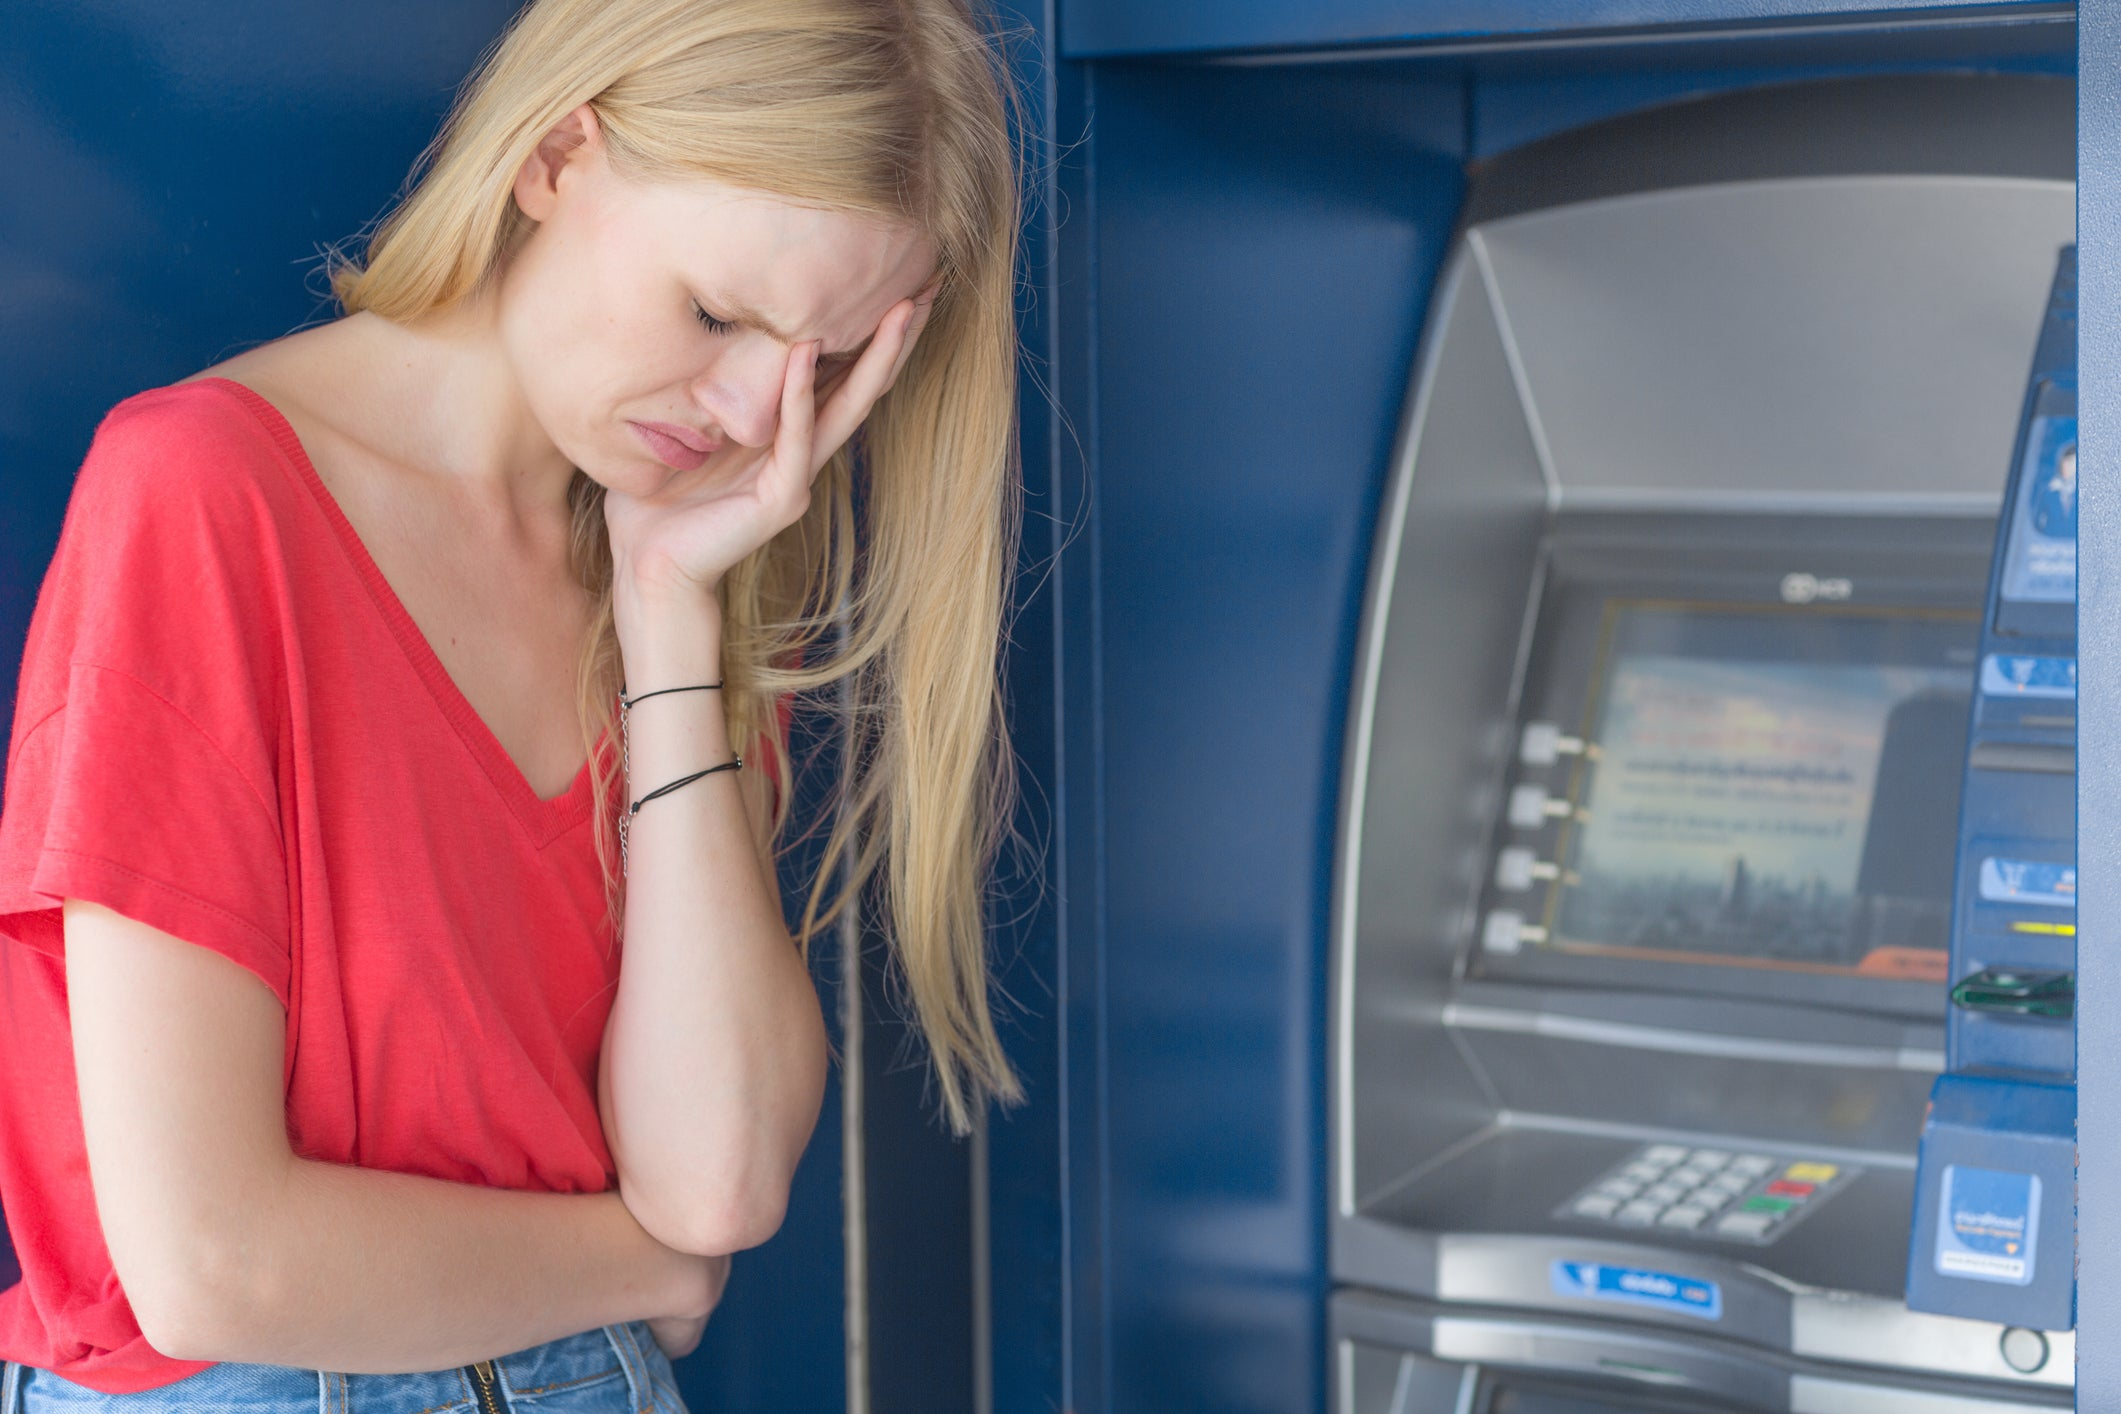 Young woman in despair beside ATM.